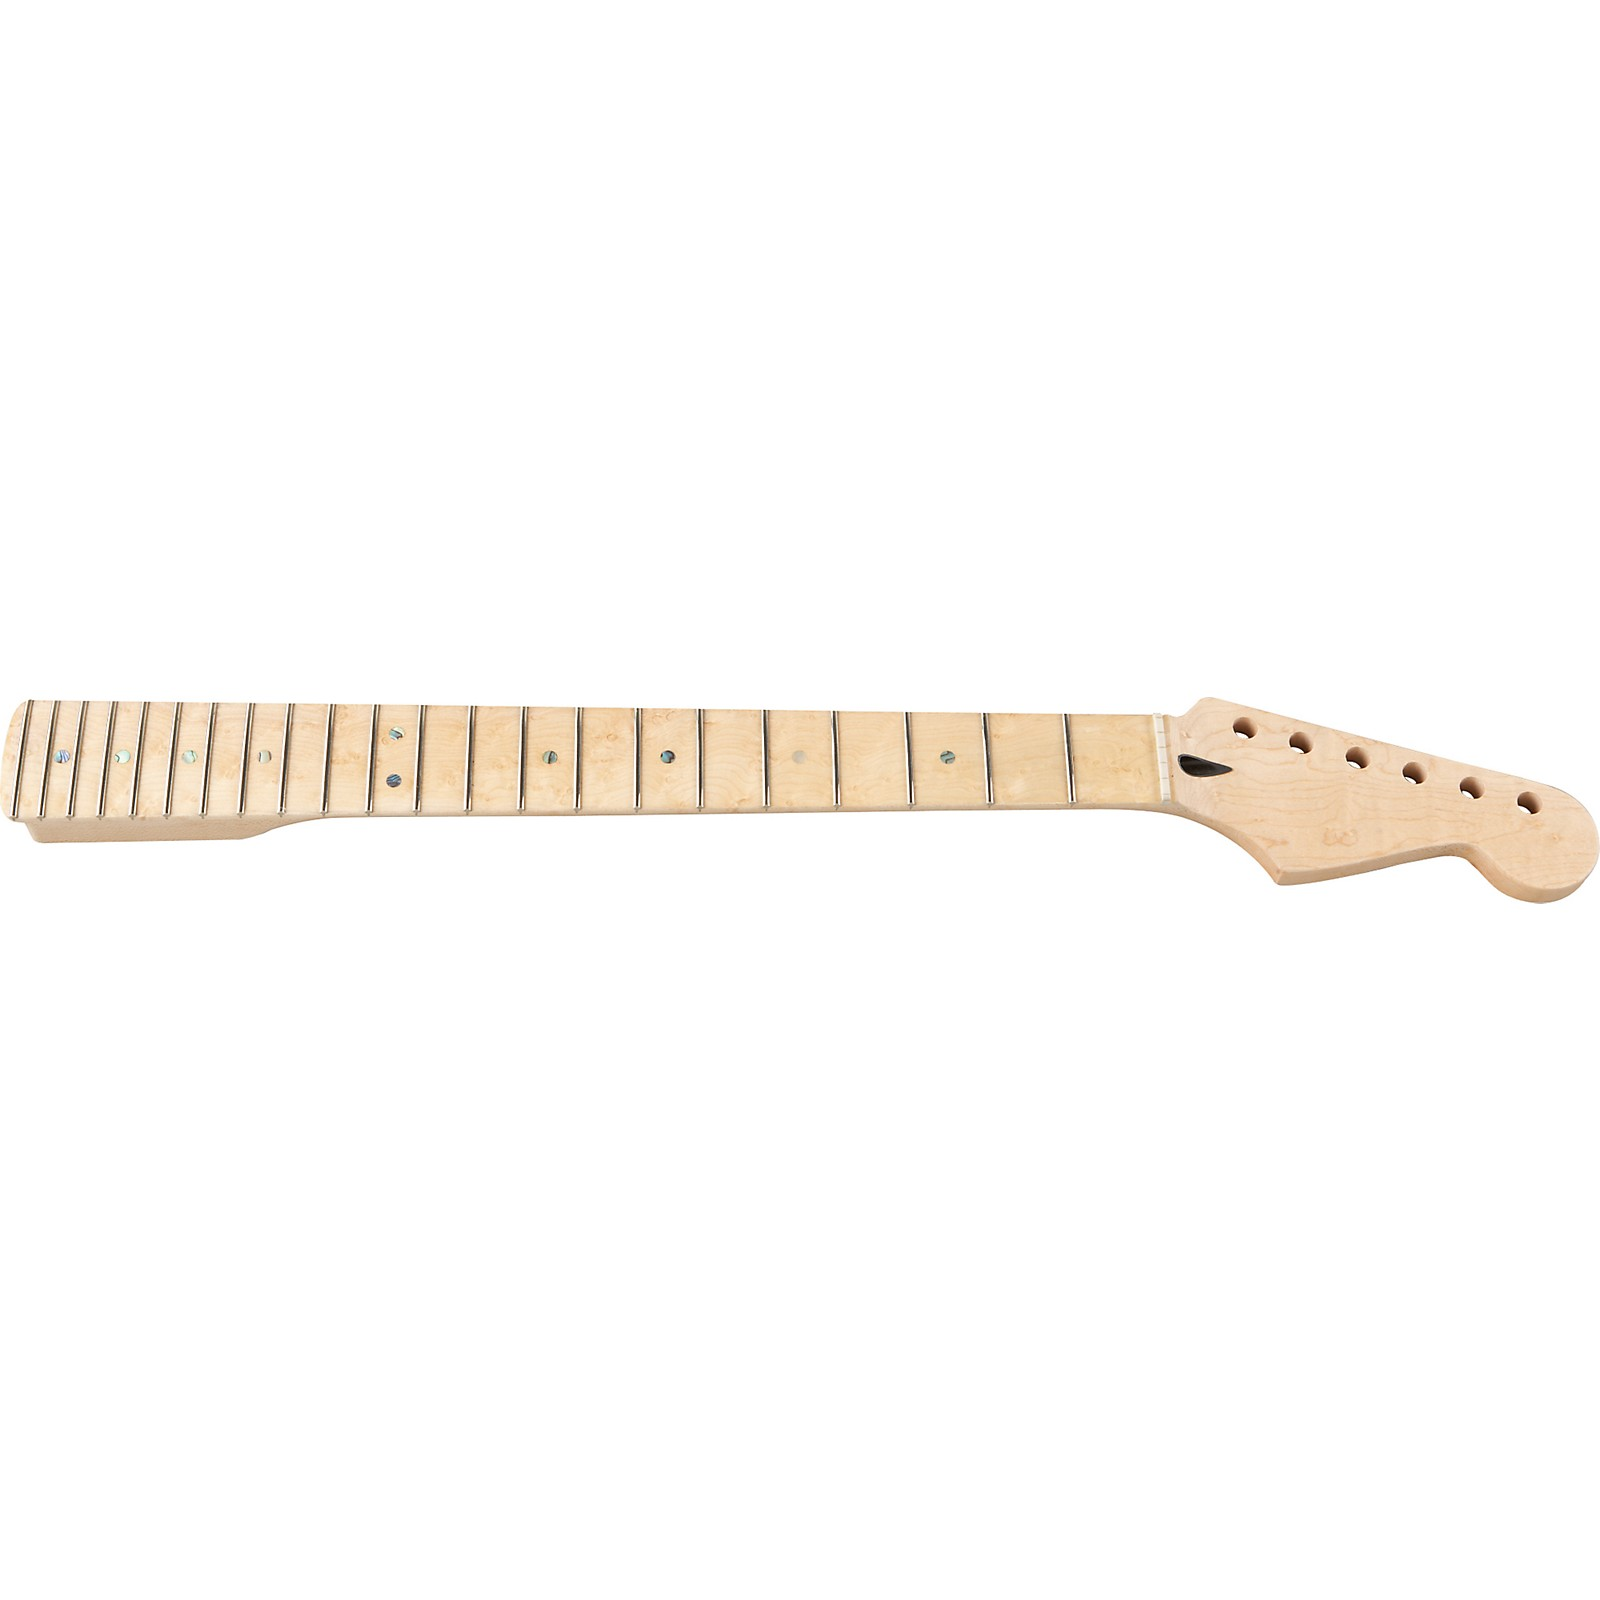 Mighty Mite MM2925 Bird's Eye Stratocaster Replacement Neck with Maple Fingerboard and Jumbo Frets